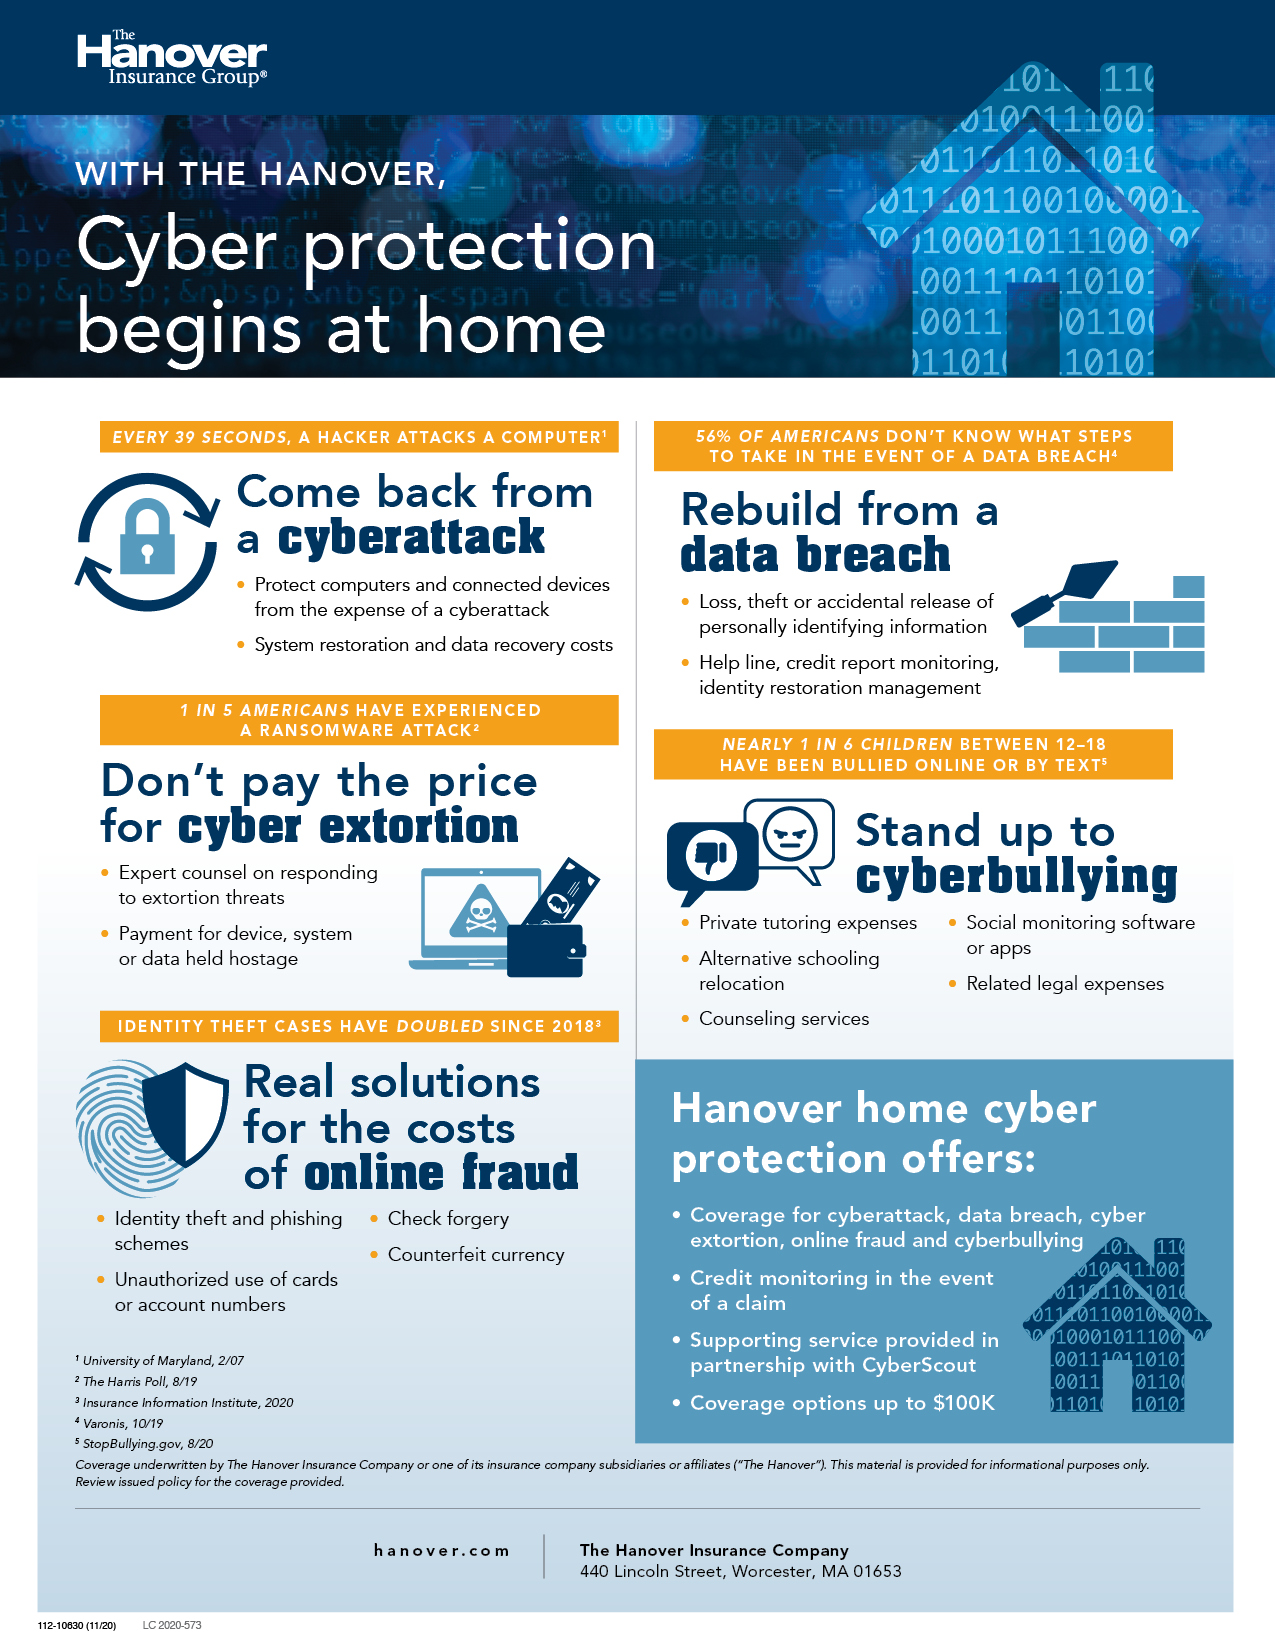 Infographic overview of Hanover cyber insurance options for homeowners